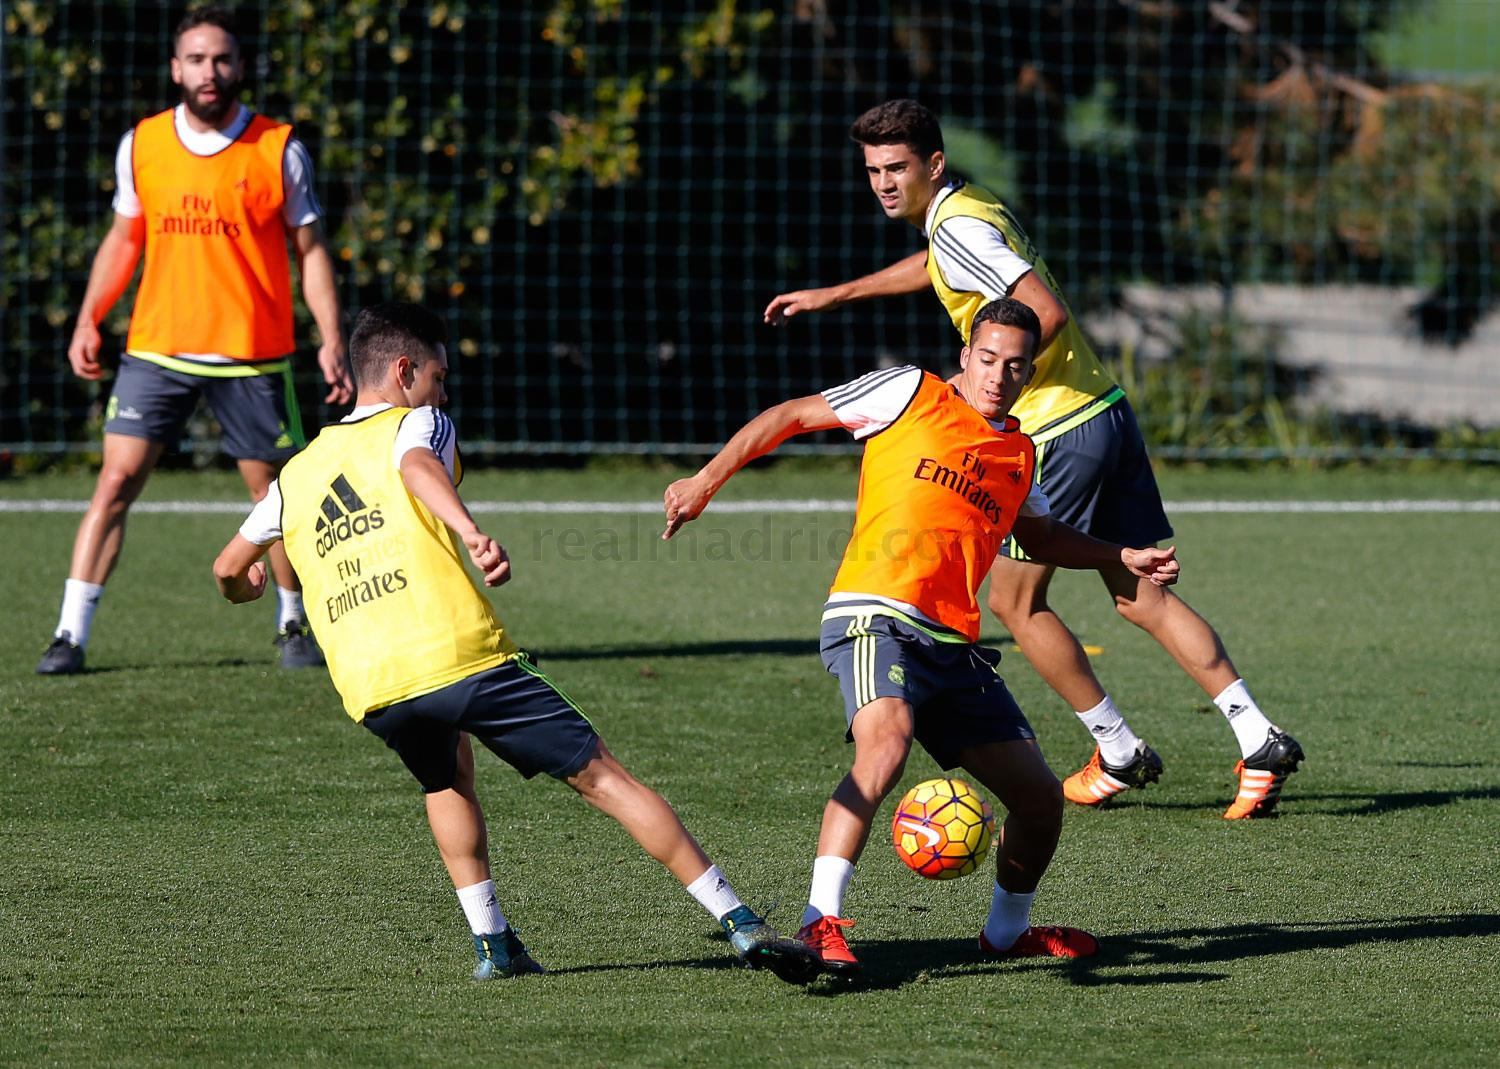 Real Madrid - Entrenamiento del Real Madrid - 09-11-2015